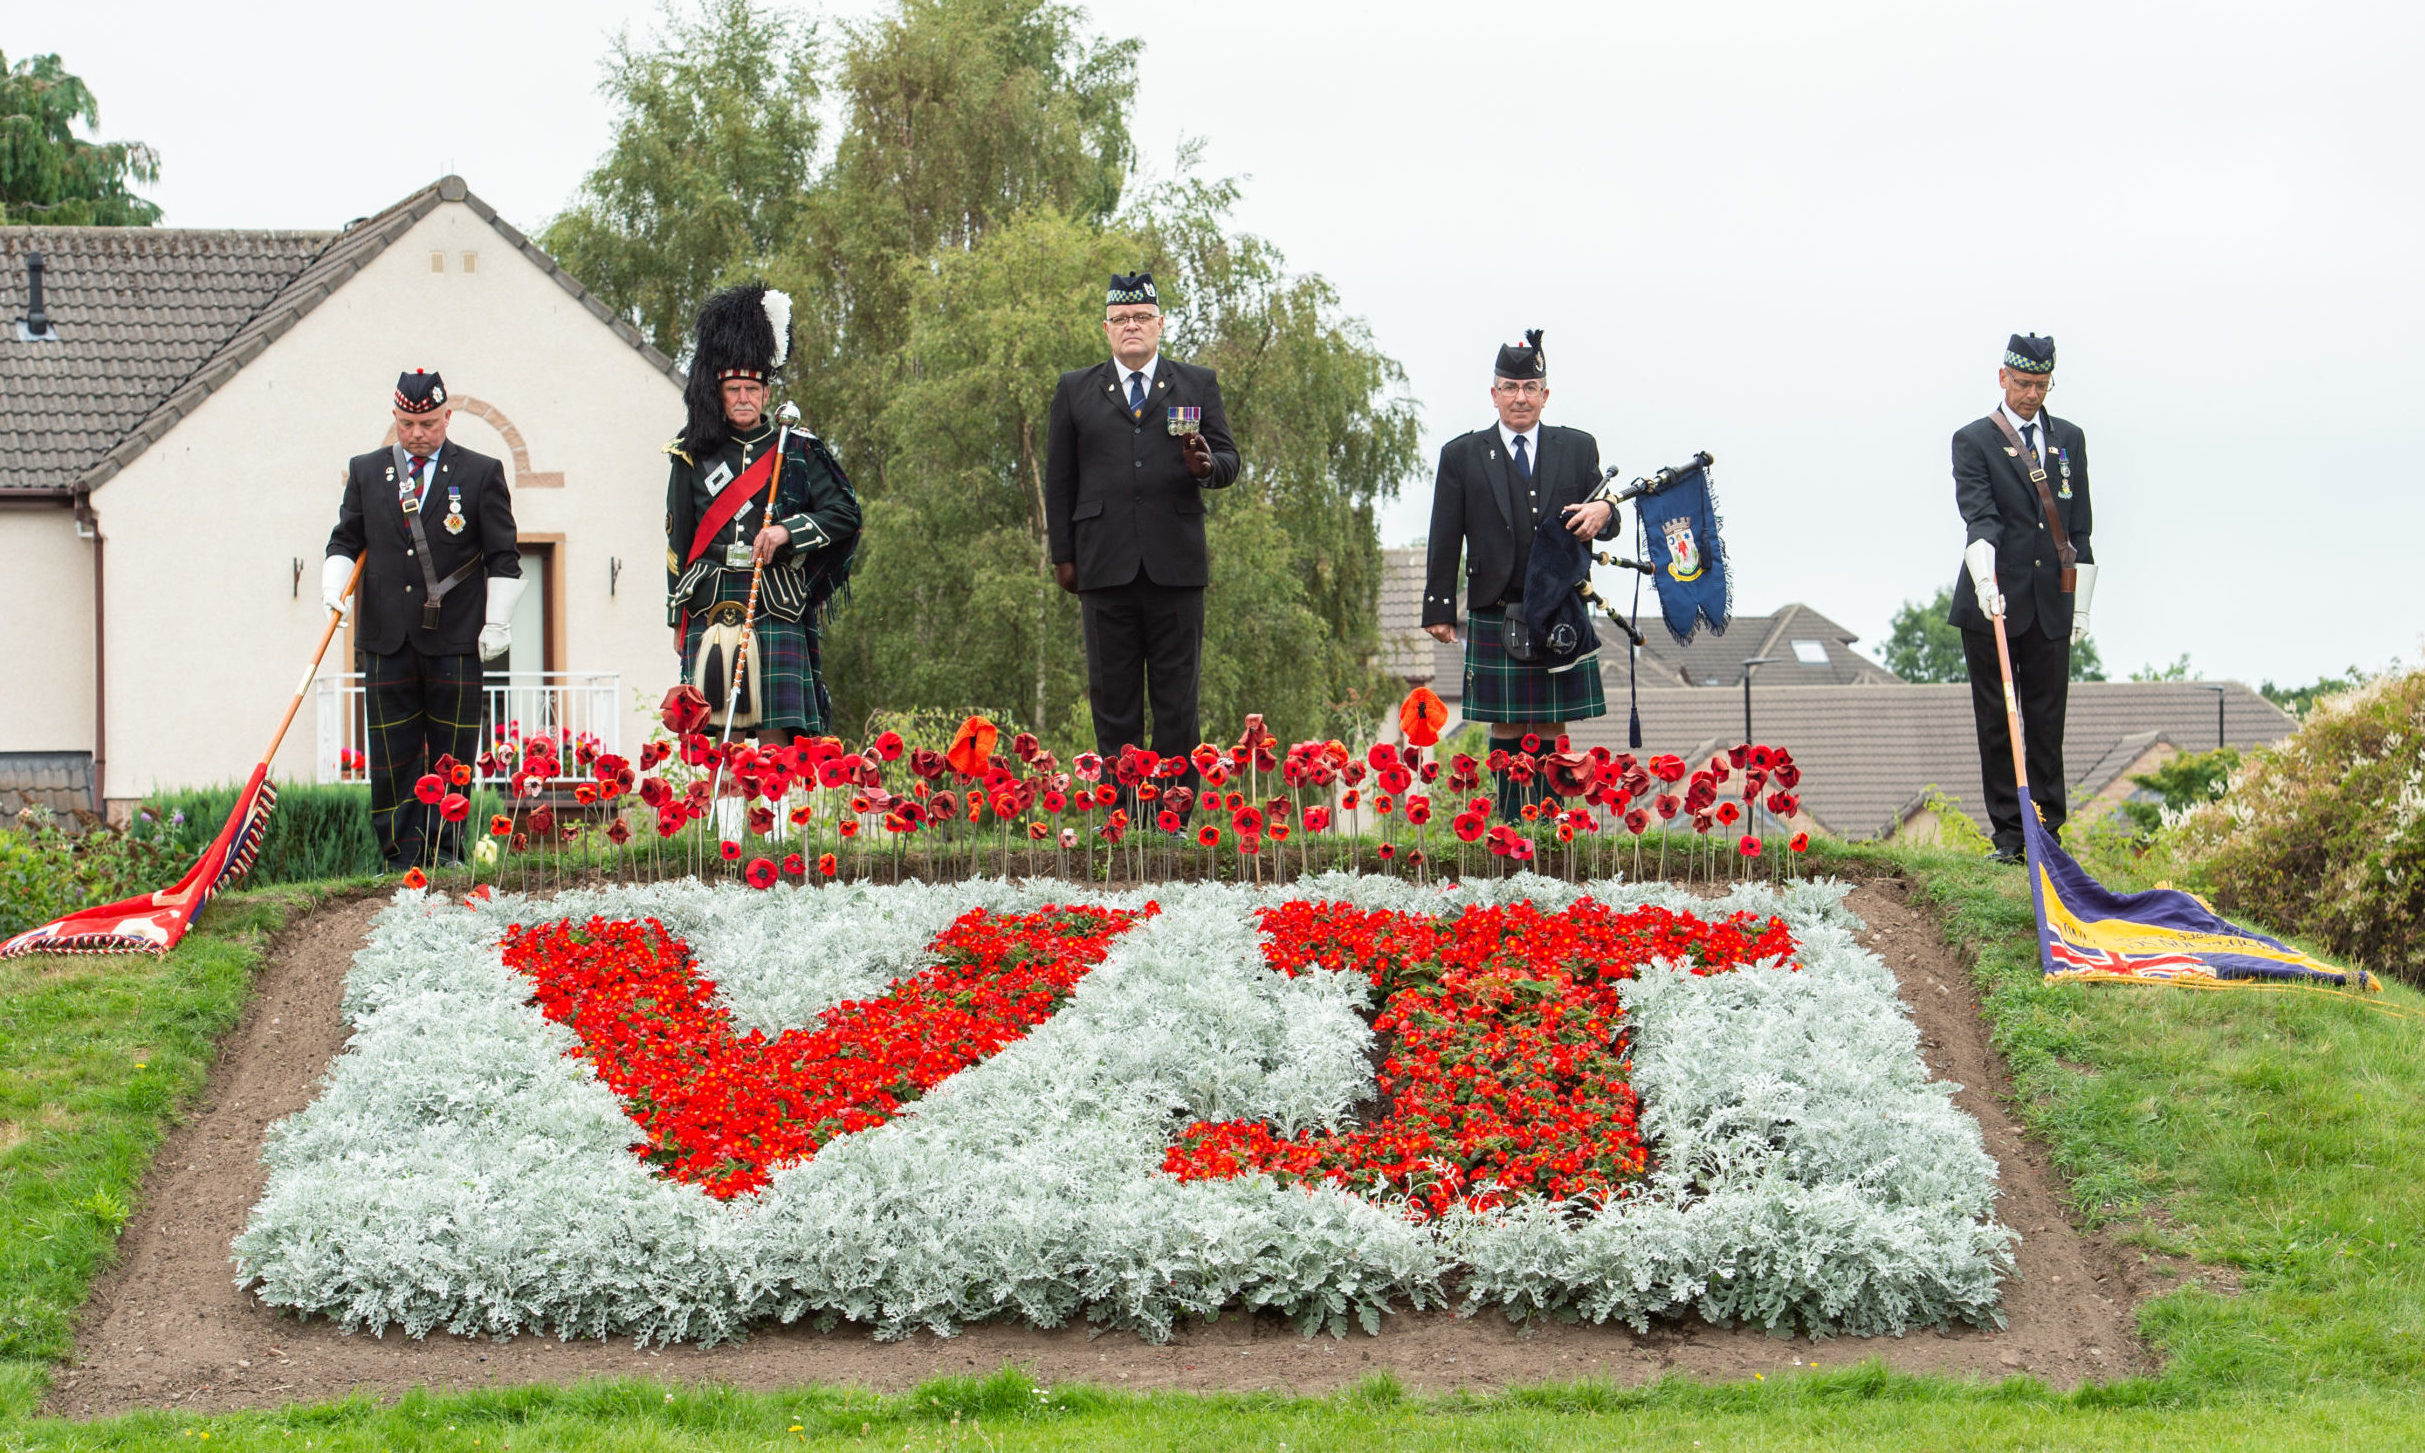 A memorial service was held in Forres to mark the 75th anniversary of VJ Day.